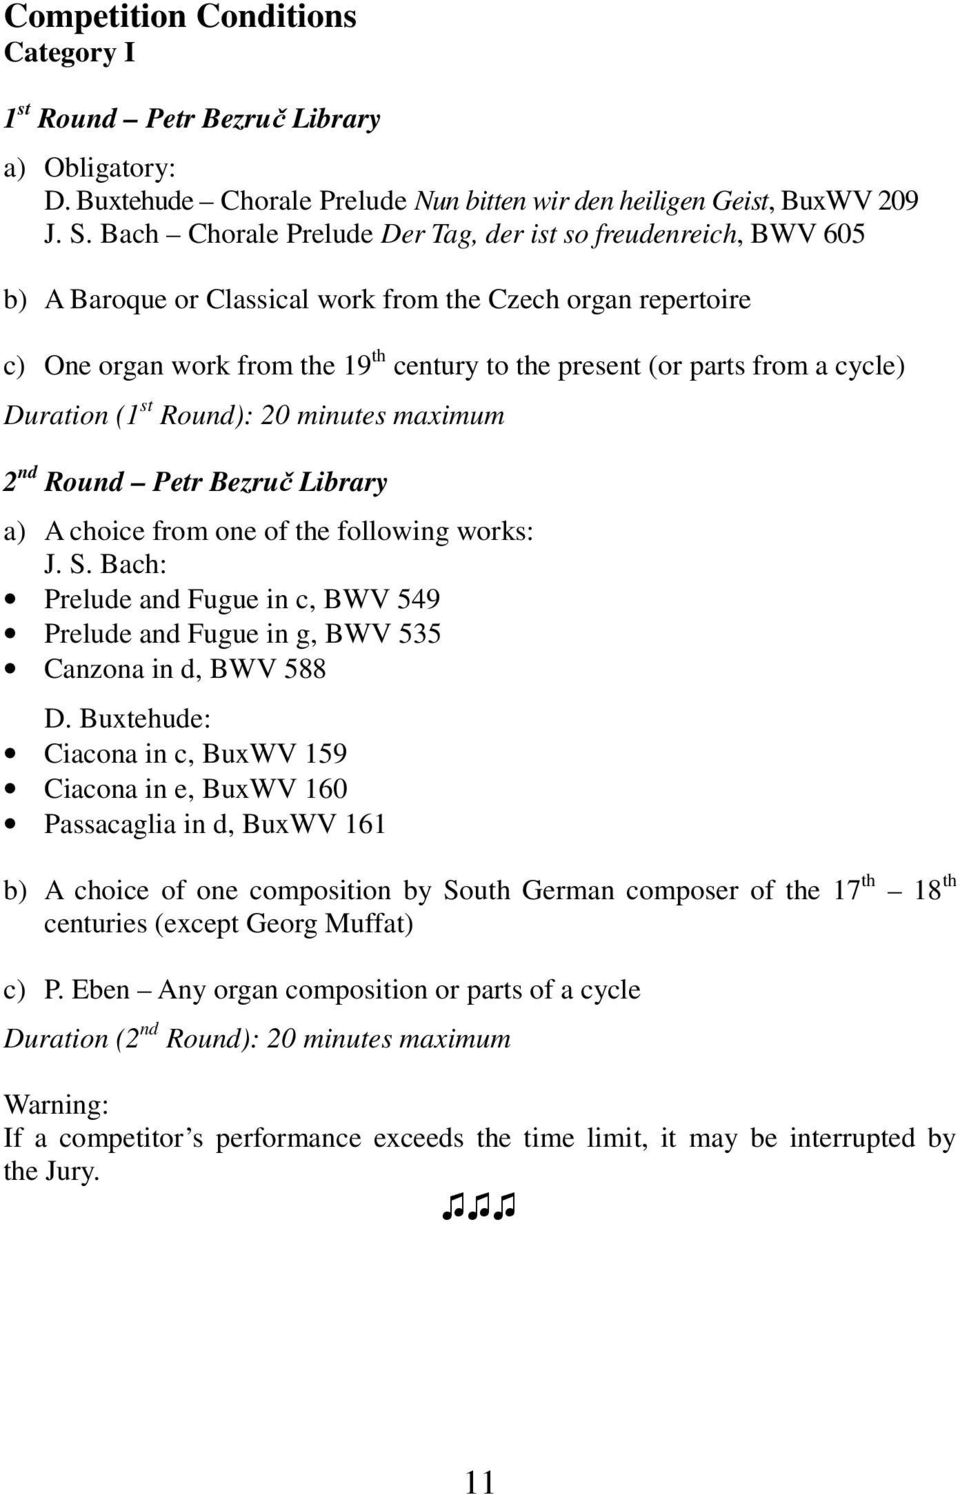 cycle) Duration (1 st Round): 20 minutes maximum 2 nd Round Petr Bezruč Library a) A choice from one of the following works: J. S.